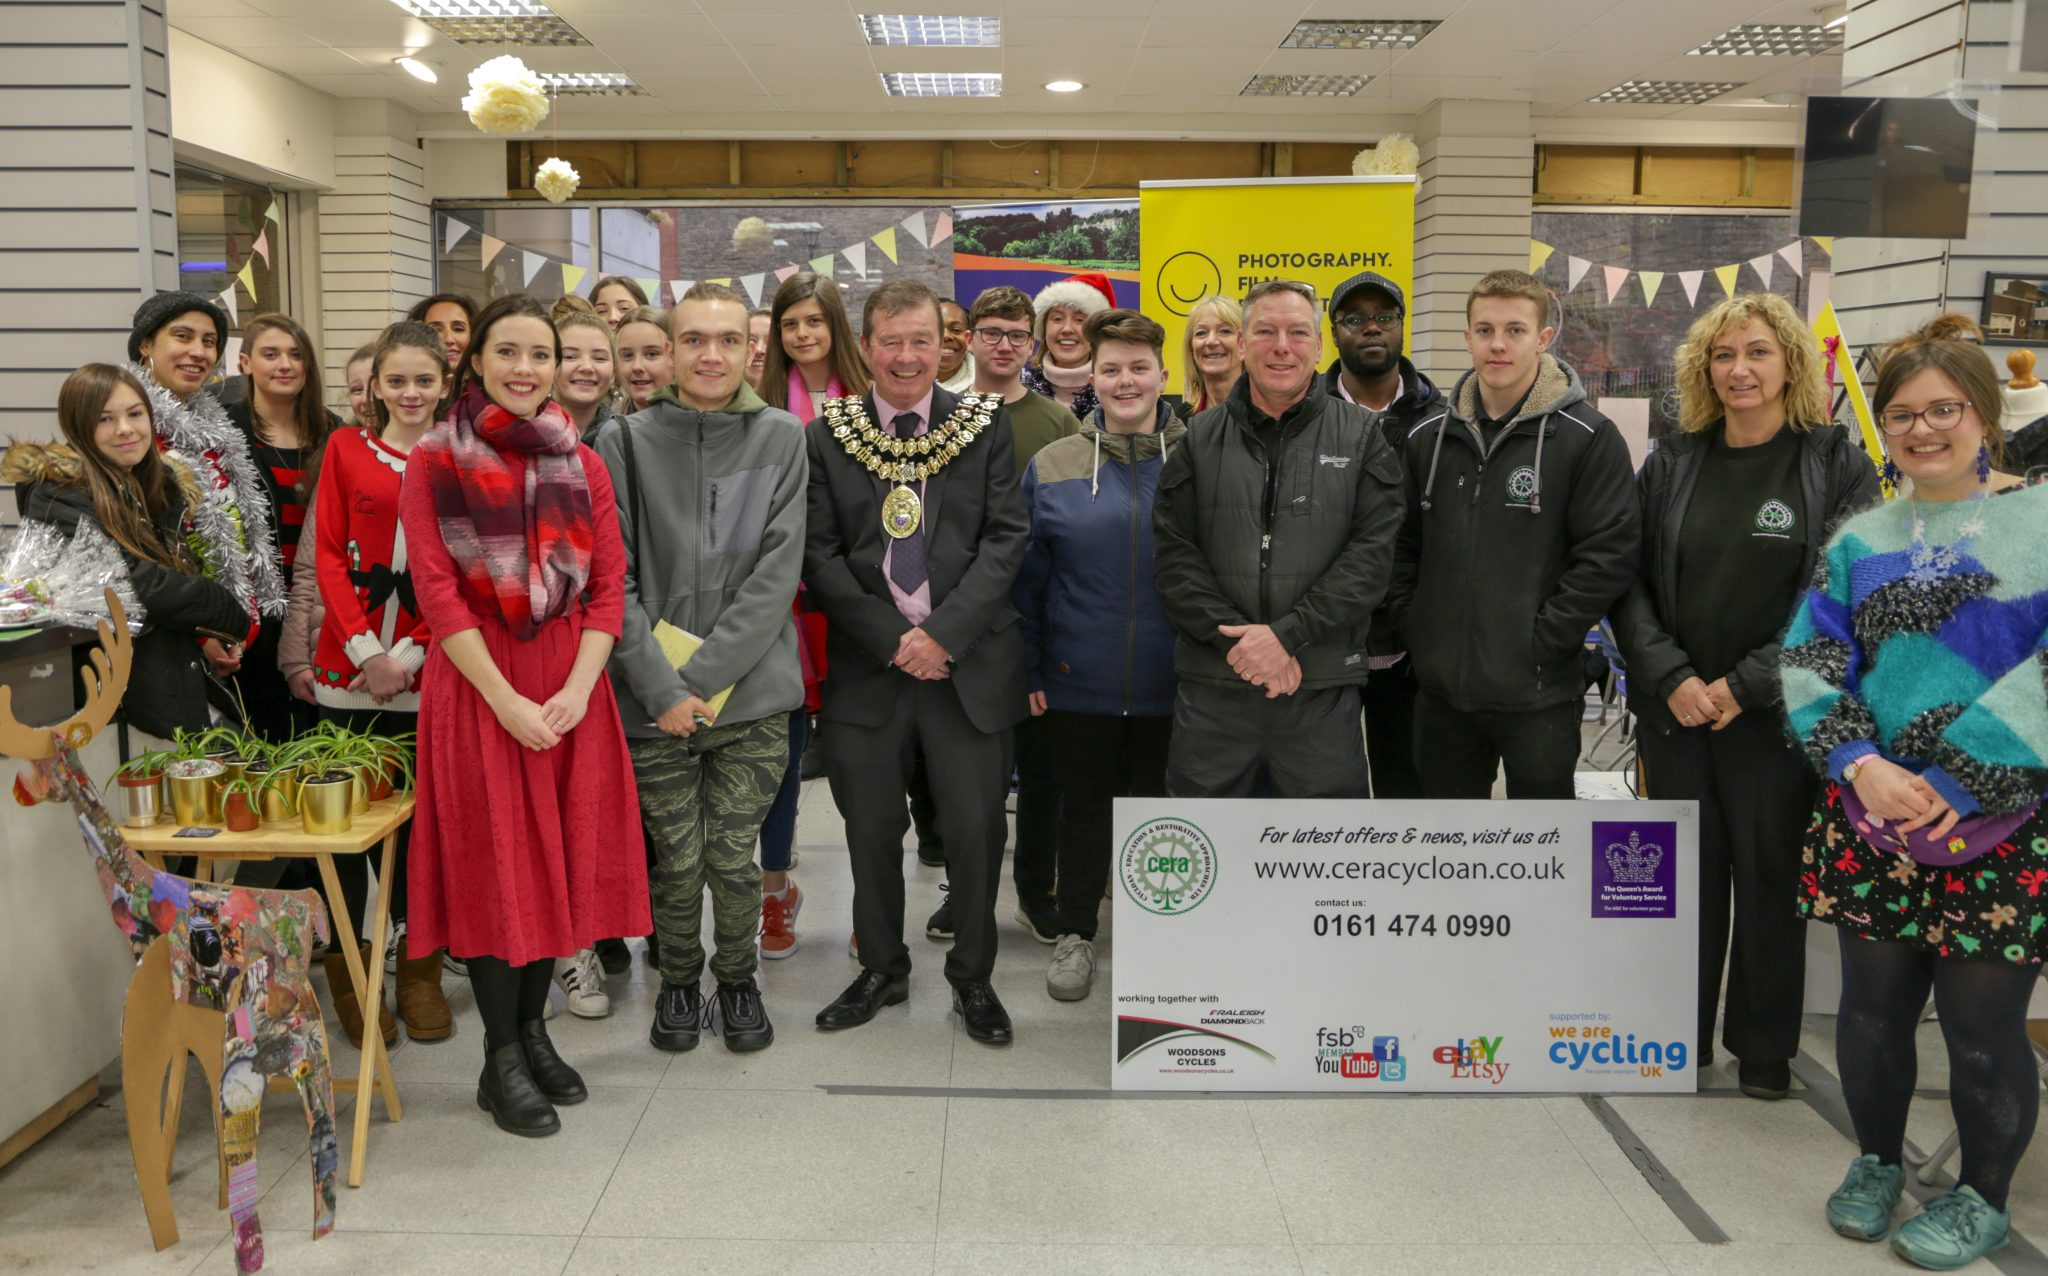 The Mayor opens SAZ MEDIA's festive community event at Merseyway shopping centre.